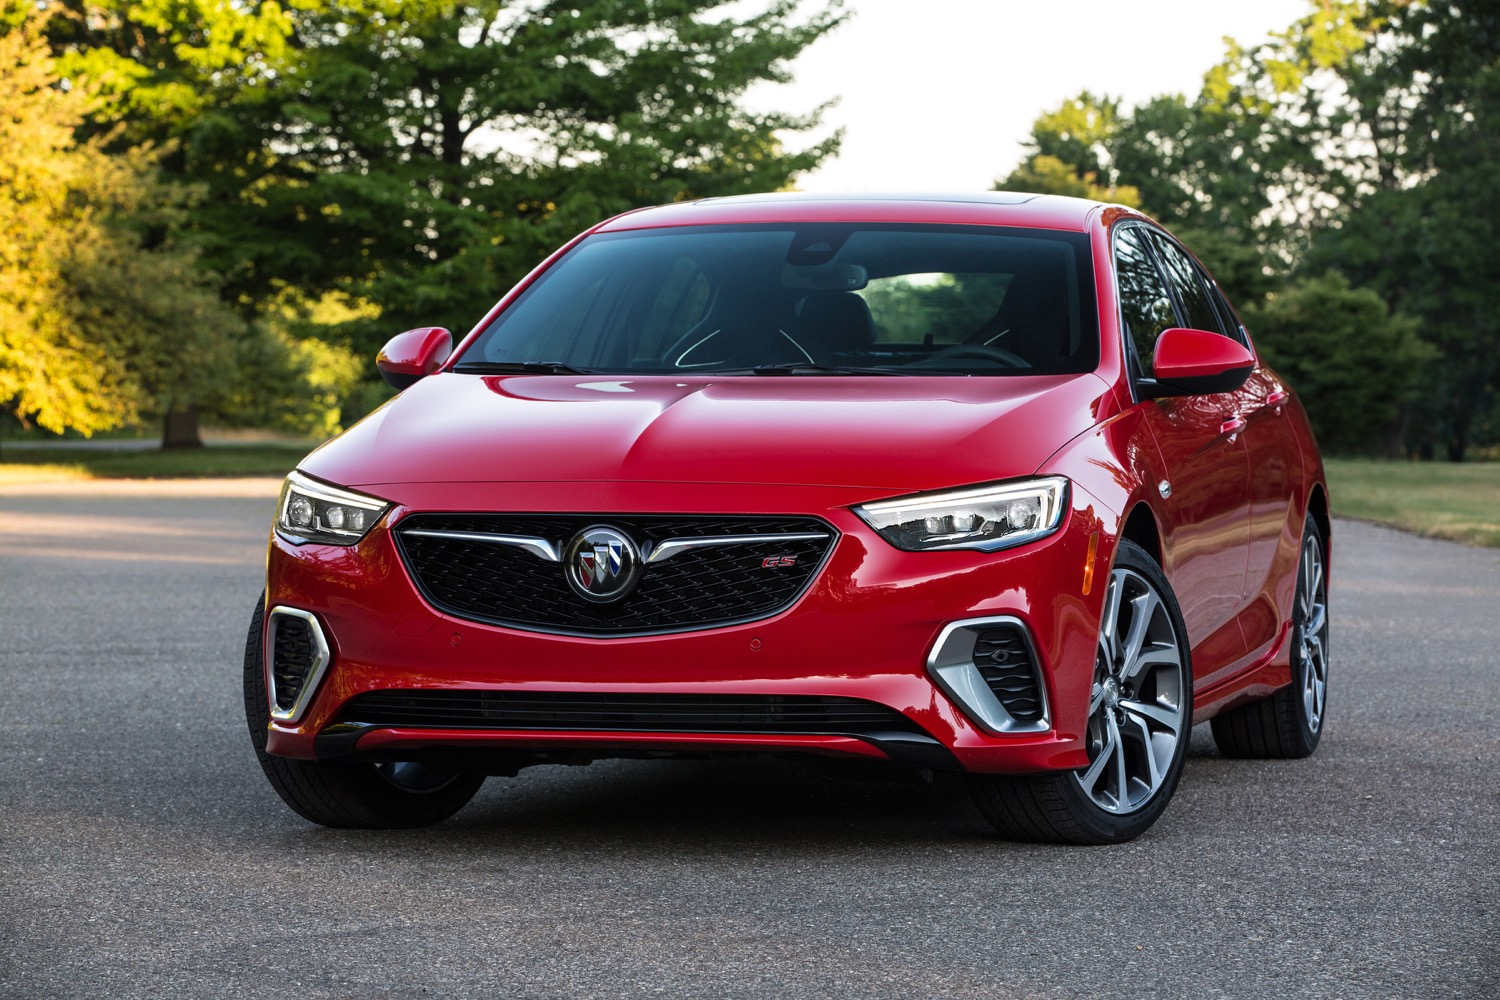 We Have Some Beef With This 2018 Buick Regal Gs Review | Gm New 2022 Buick Regal Specs, Price, 0-60